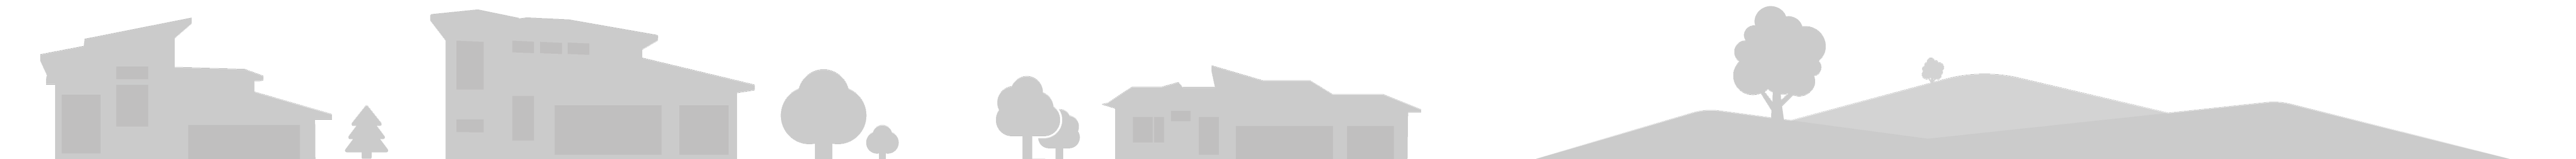 fun whimsical house silhouettes